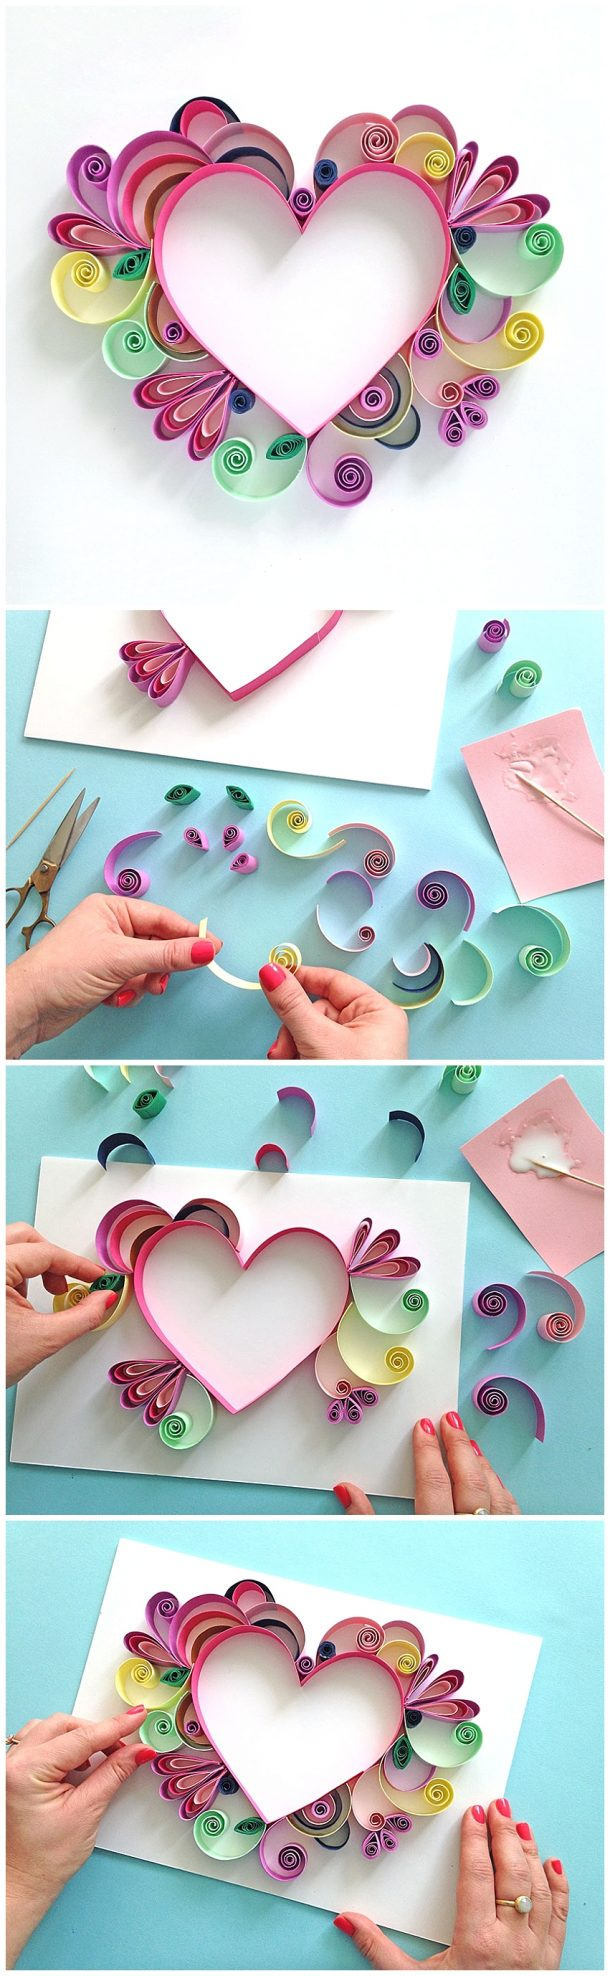 Learn How to Quill a darling Heart Shaped Mother's Day Paper Craft Gift Idea via Paper Chase - Moms and Grandmas will love these pretty handmade works of art! The BEST Easy DIY Mother's Day Gifts and Treats Ideas - Holiday Craft Activity Projects, Free Printables and Favorite Brunch Desserts Recipes for Moms and Grandmas #mothersdaygifts #mothersdaygiftideas #diymothersday #diymothersdaygifts #giftsformom #giftsforgrandma